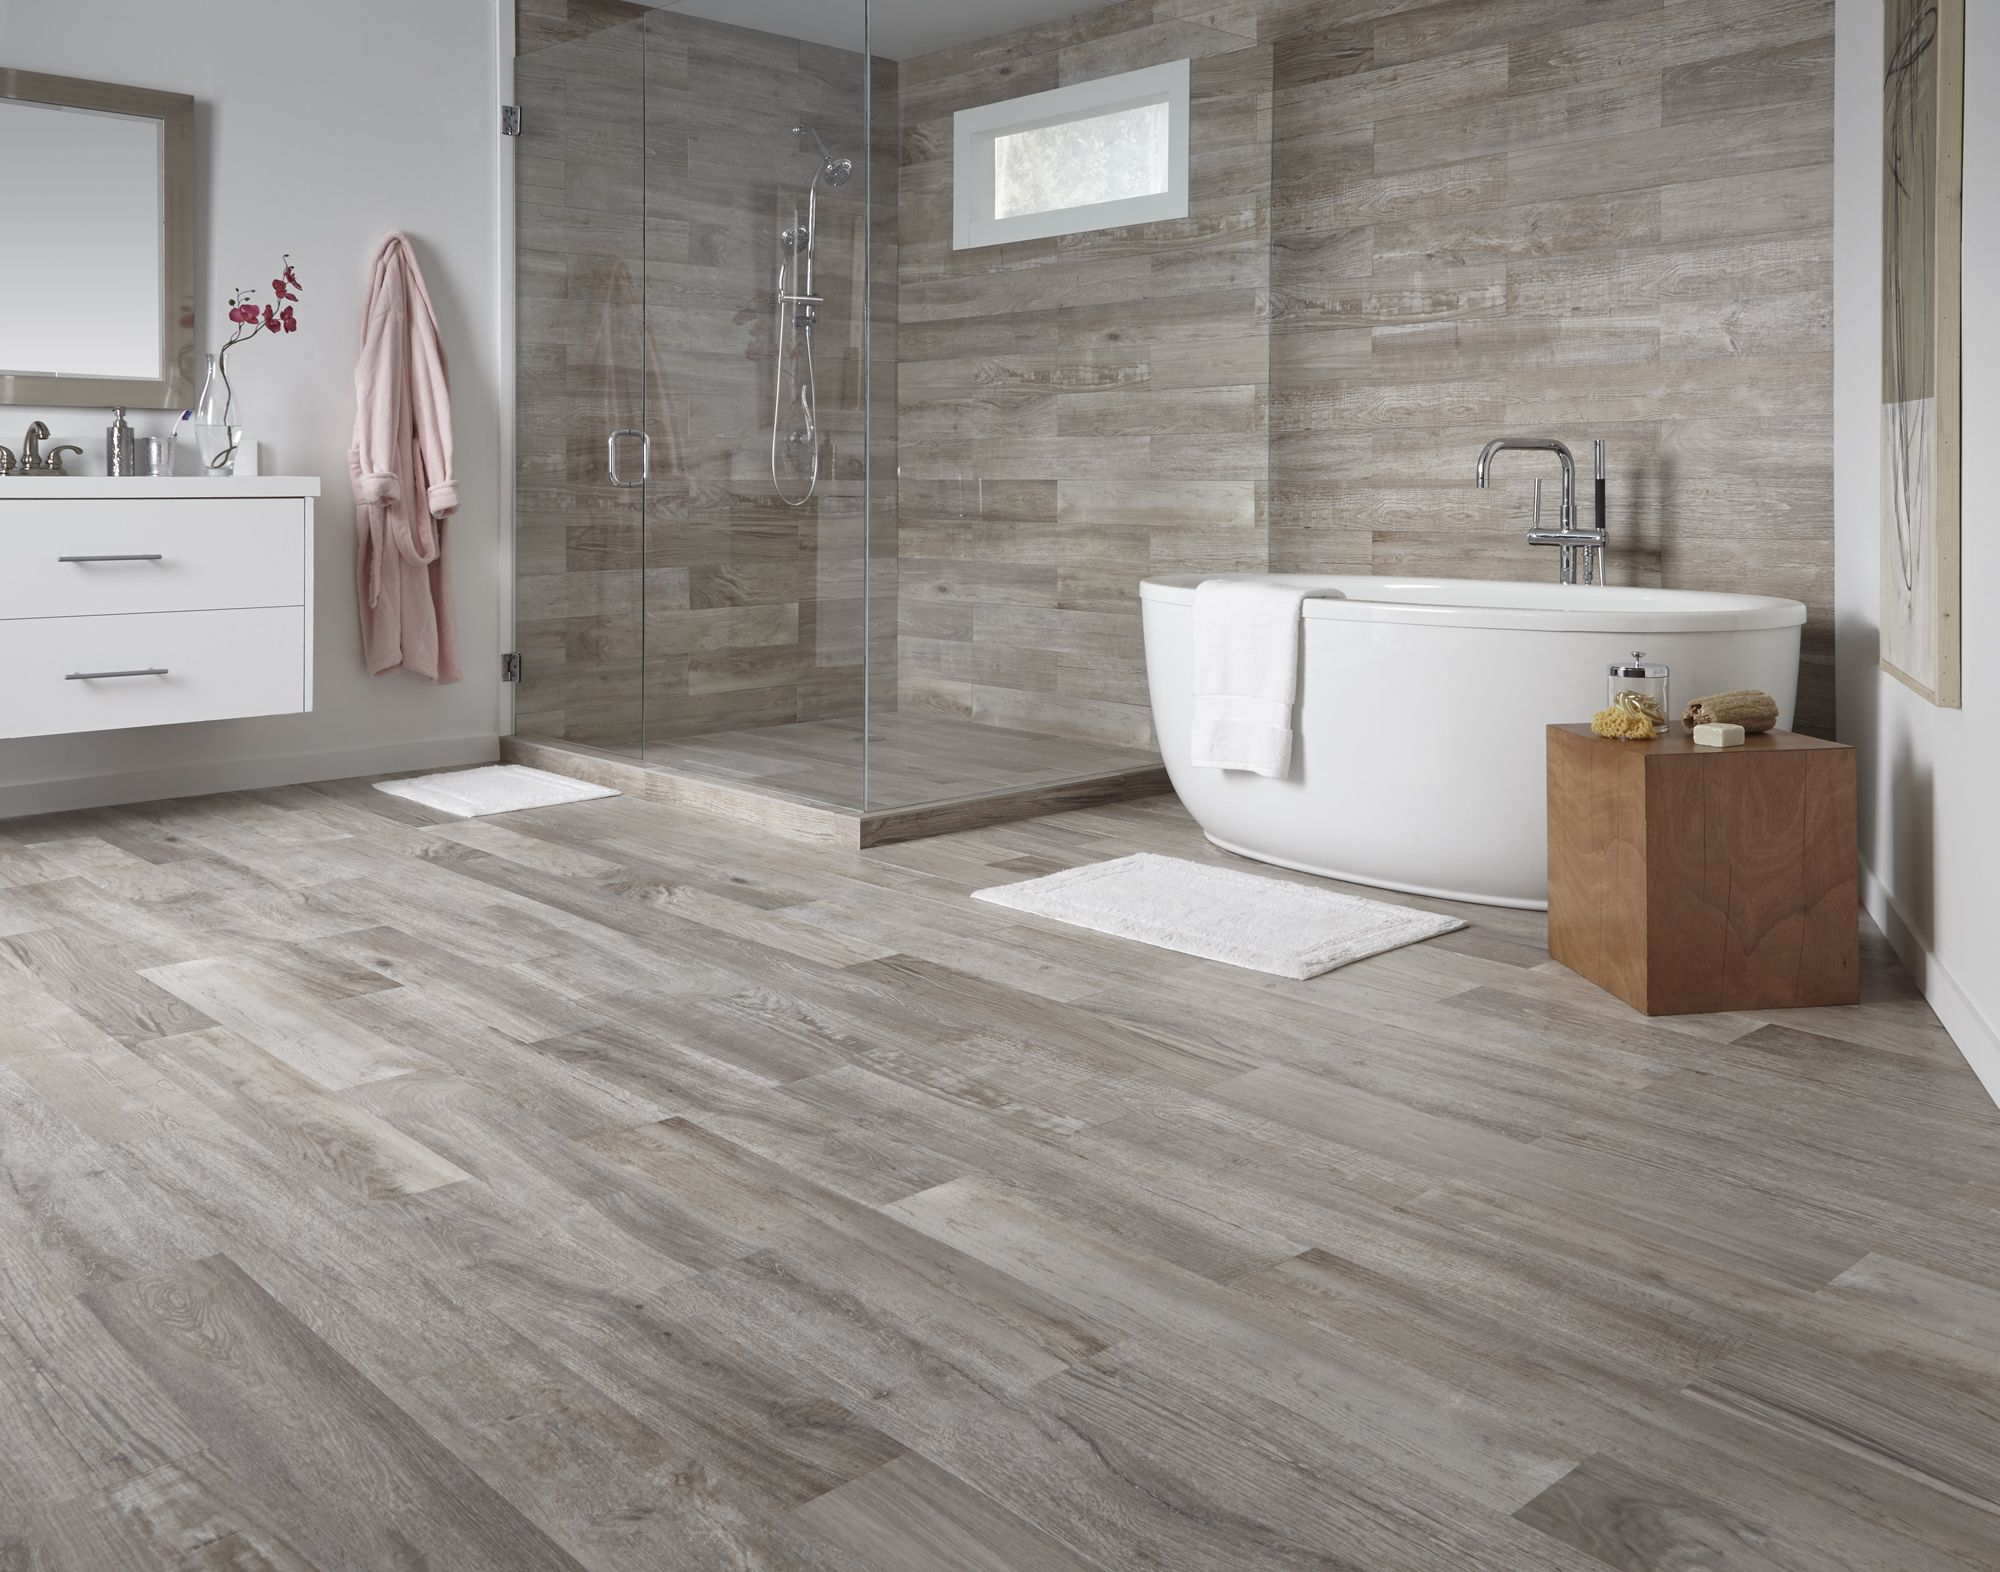 Farina bay oak waterproof wood look tile floors wood for Tile and hardwood floor